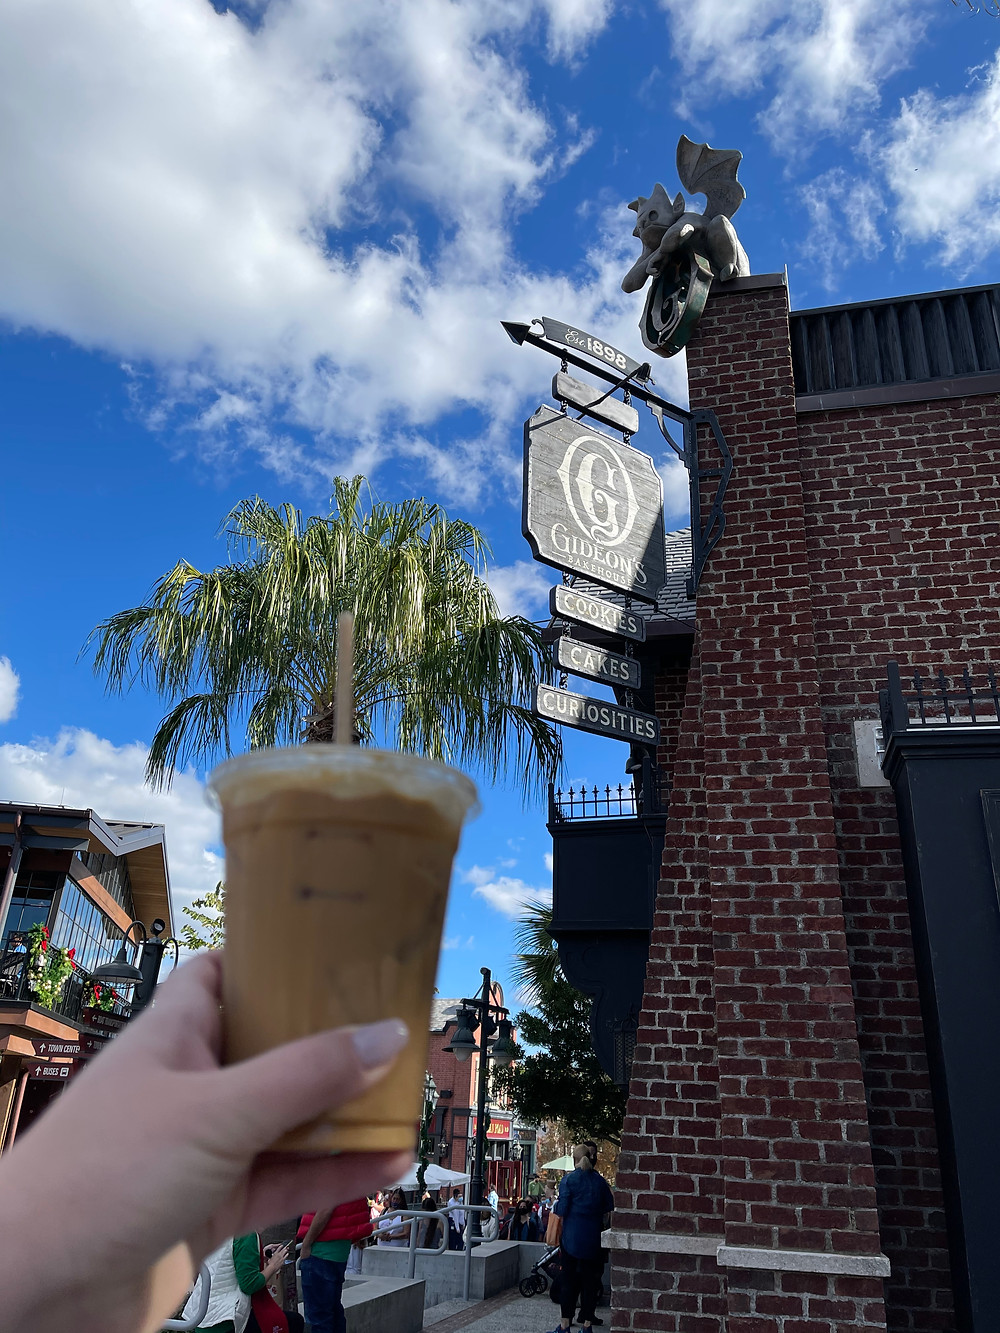 Gideon's Bakehouse Is Open at Disney Springs and We Have a Full Review!